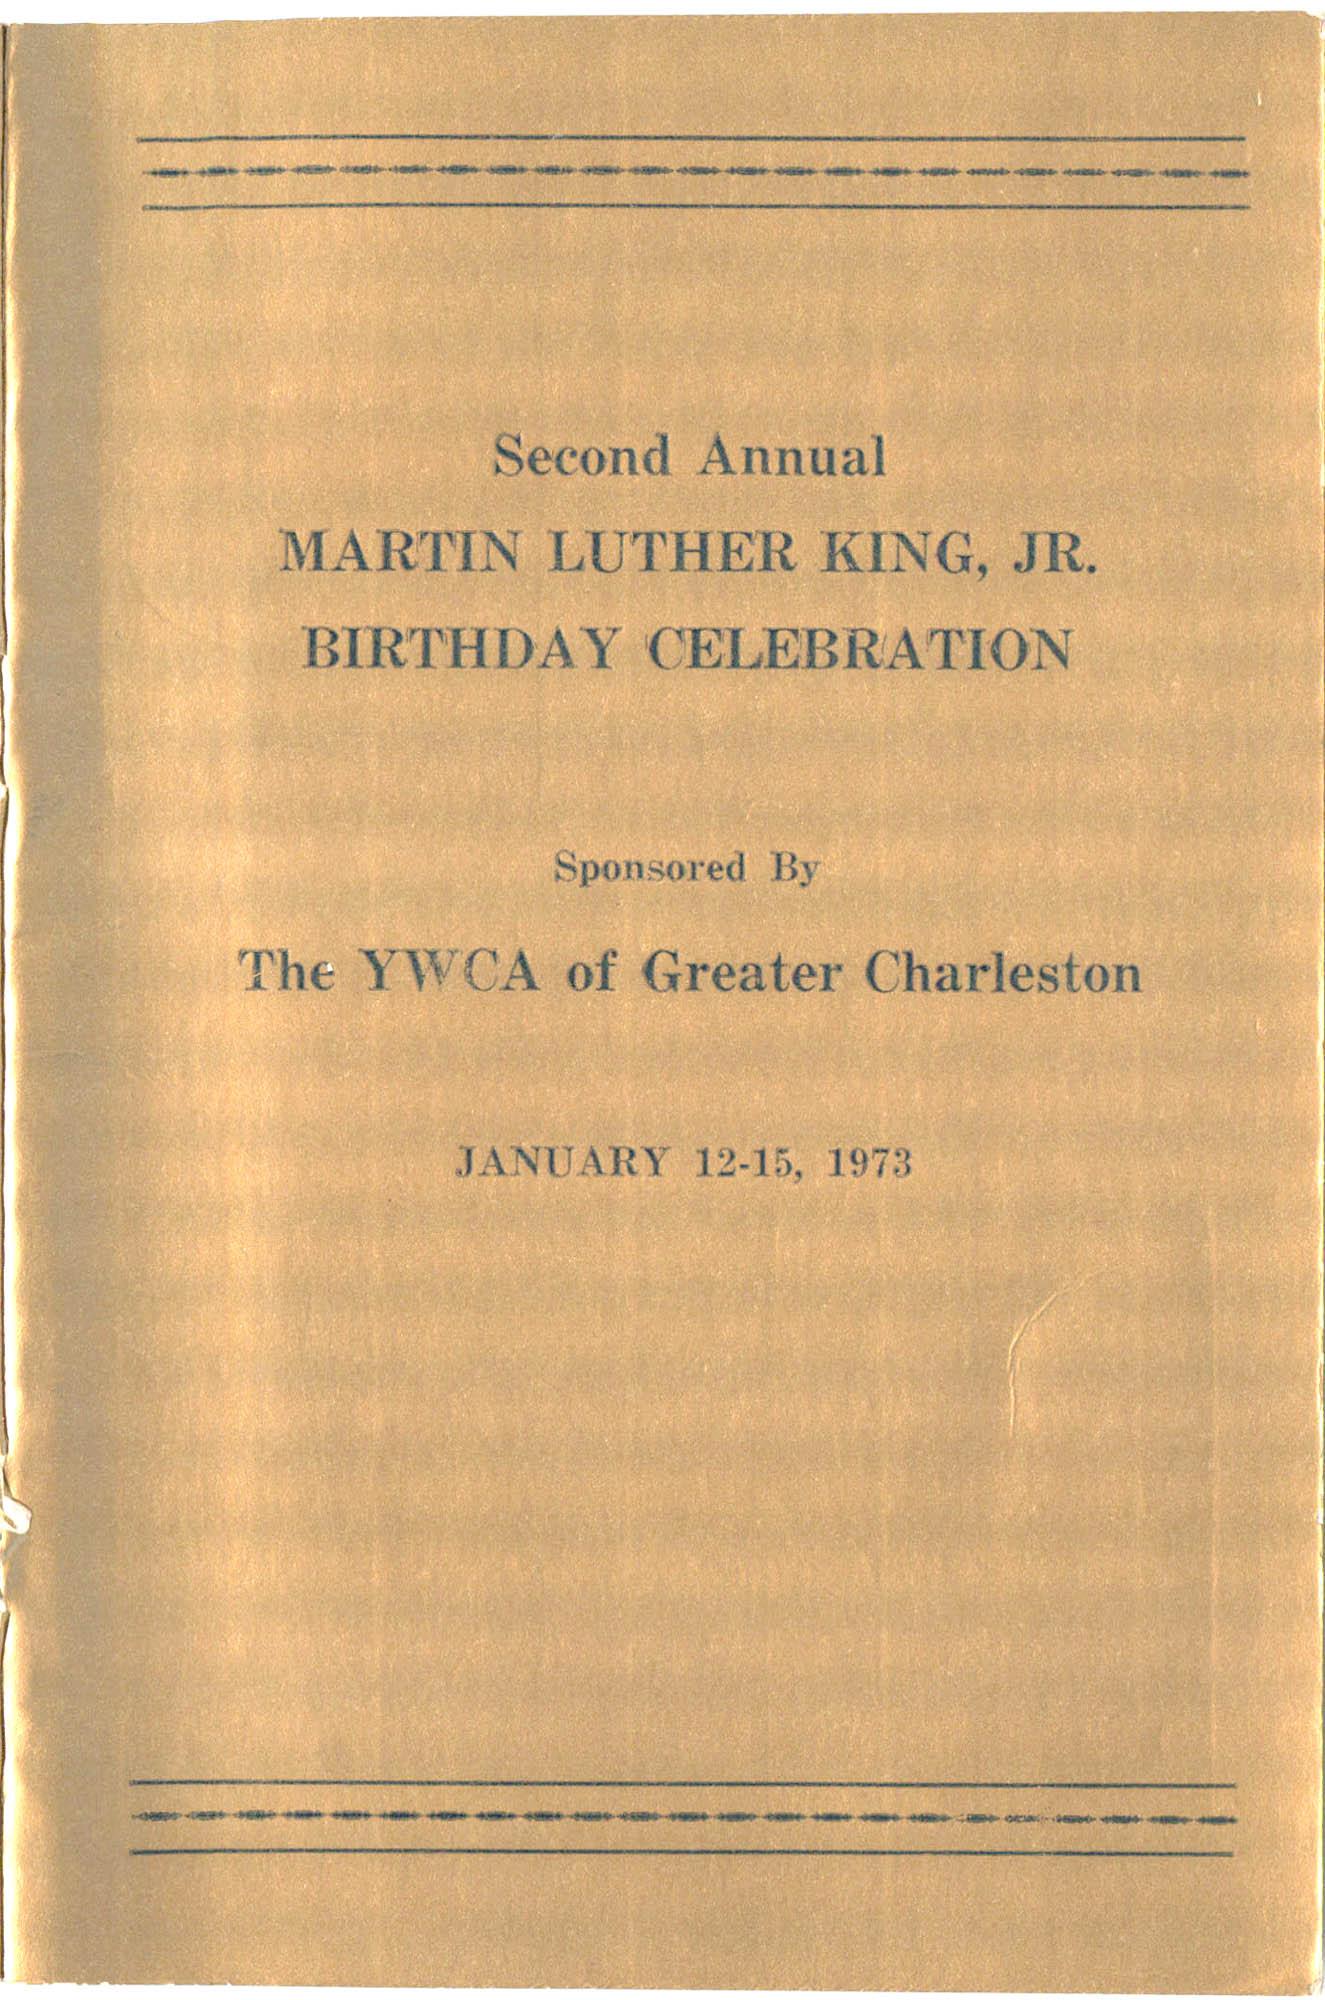 Second Annual Martin Luther King, Jr. Birthday Celebration